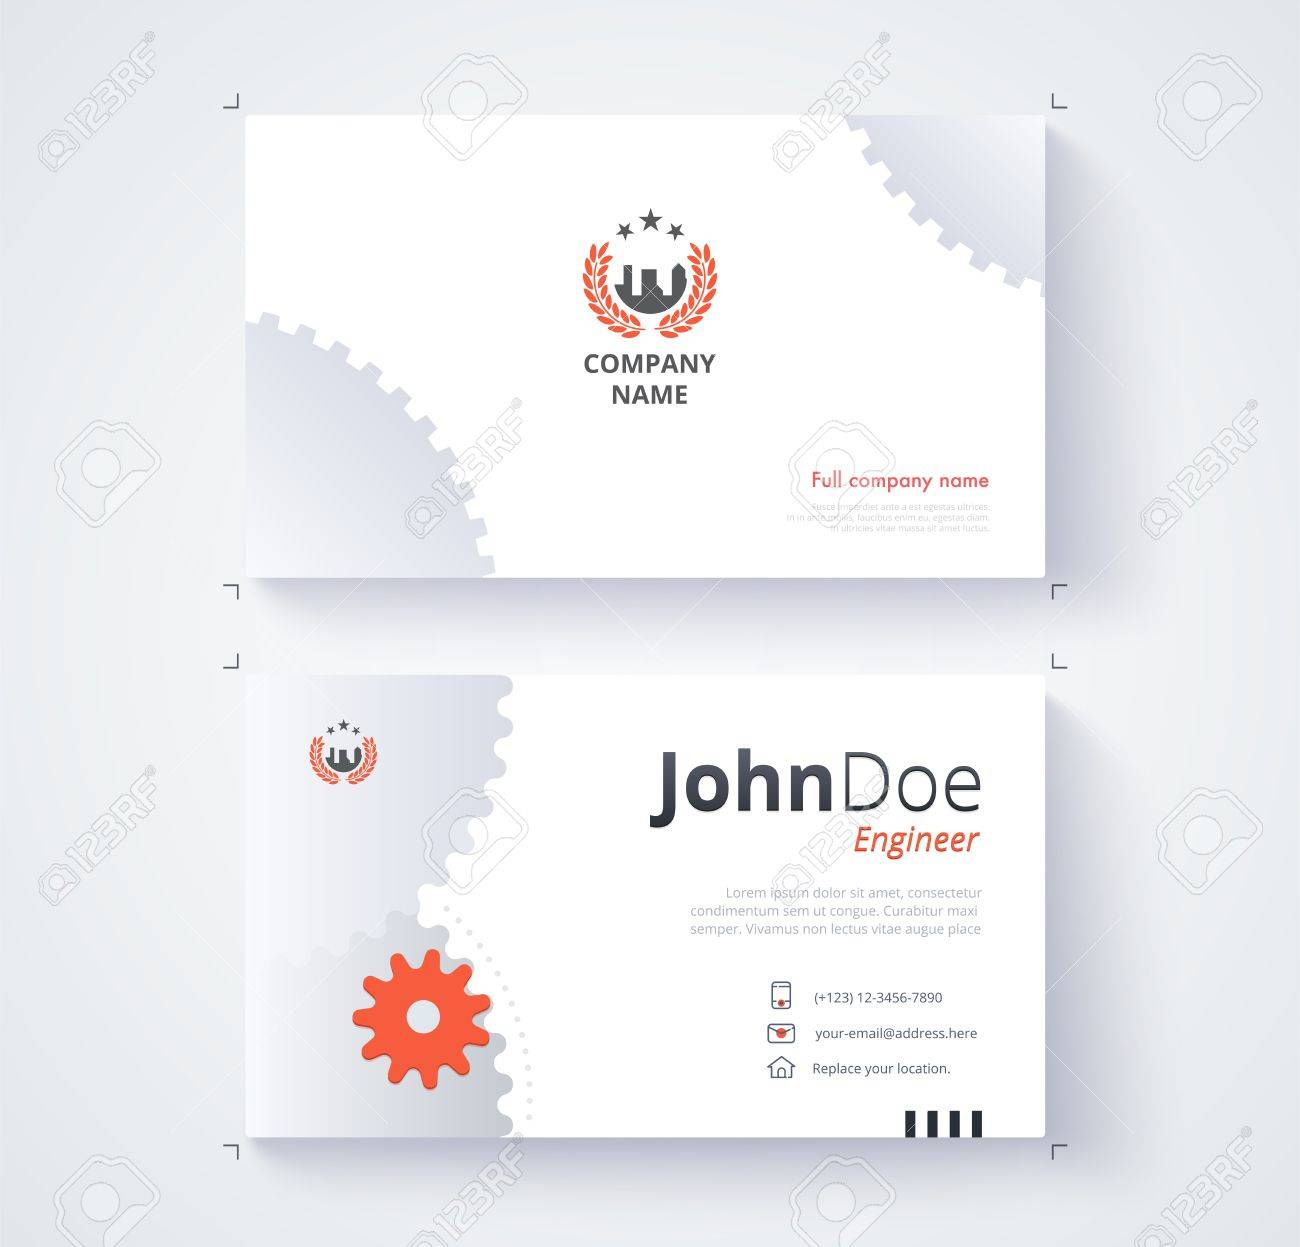 Engineer business card template gear background royalty free engineer business card template gear background stock vector 71264577 reheart Choice Image